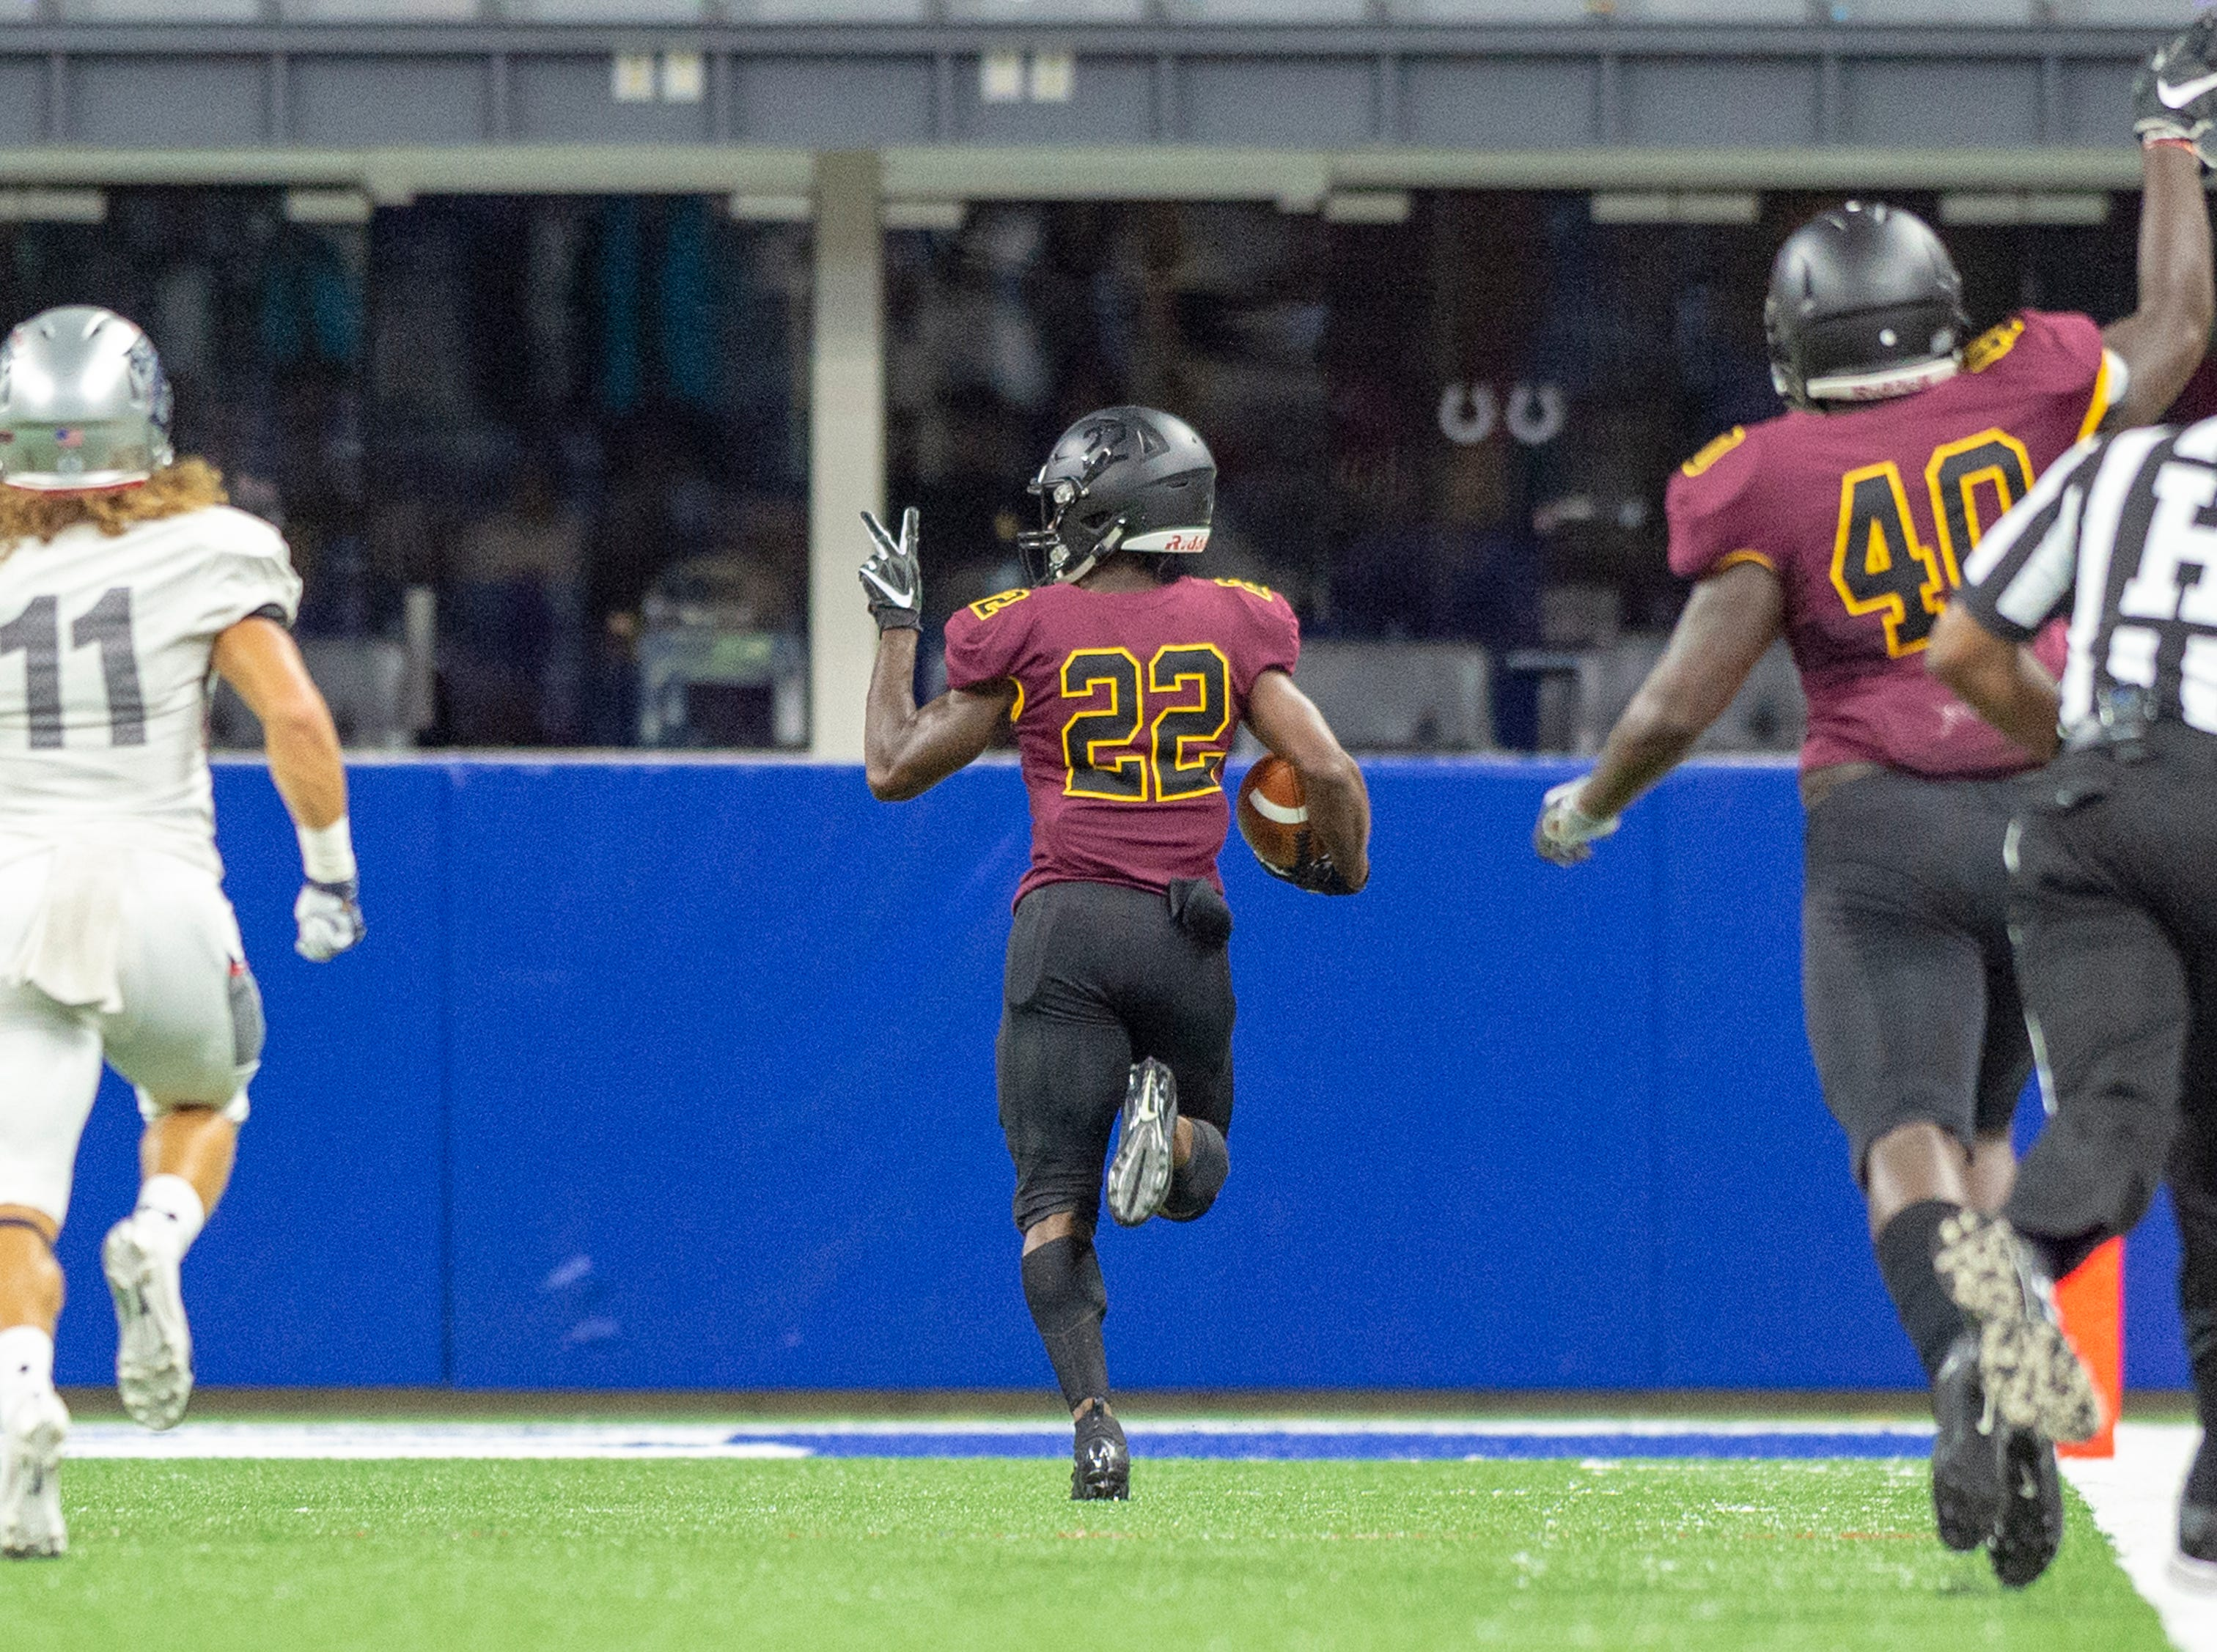 Bethune Cookman Wildcats wide receiver Jimmie Robinson (22) signals to the opposing team that this is his second kick-off runback for a touchdown in the game during the first half of action. Howard Bison took on Bethune Cookman Wildcats in the Circle City Classic game, Saturday, Sept. 22, 2018, at Lucas Oil Stadium.